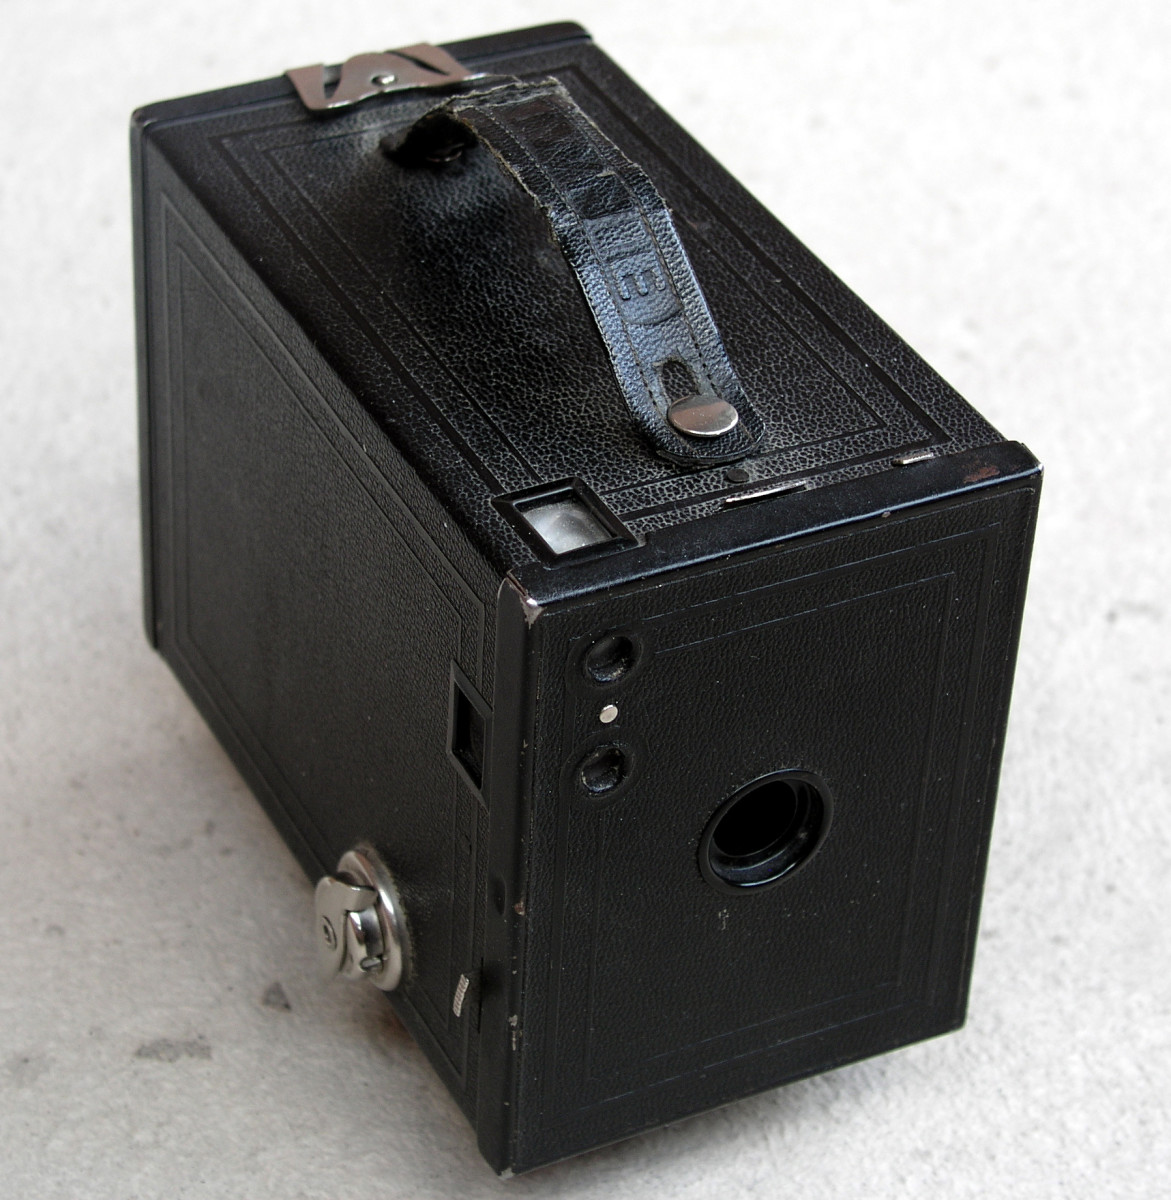 1910 Brownie Box Camera